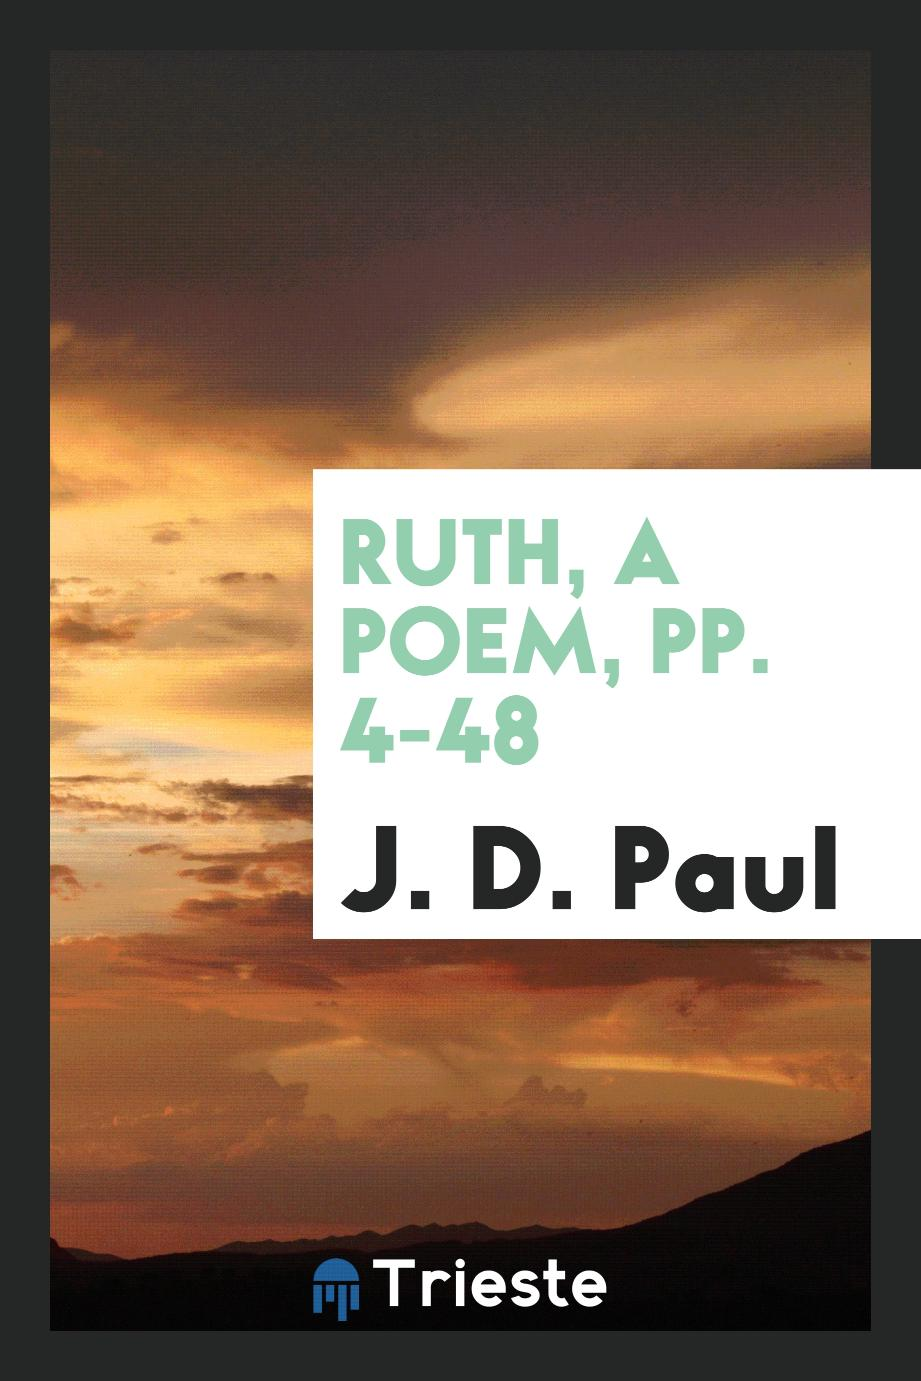 Ruth, a poem, pp. 4-48